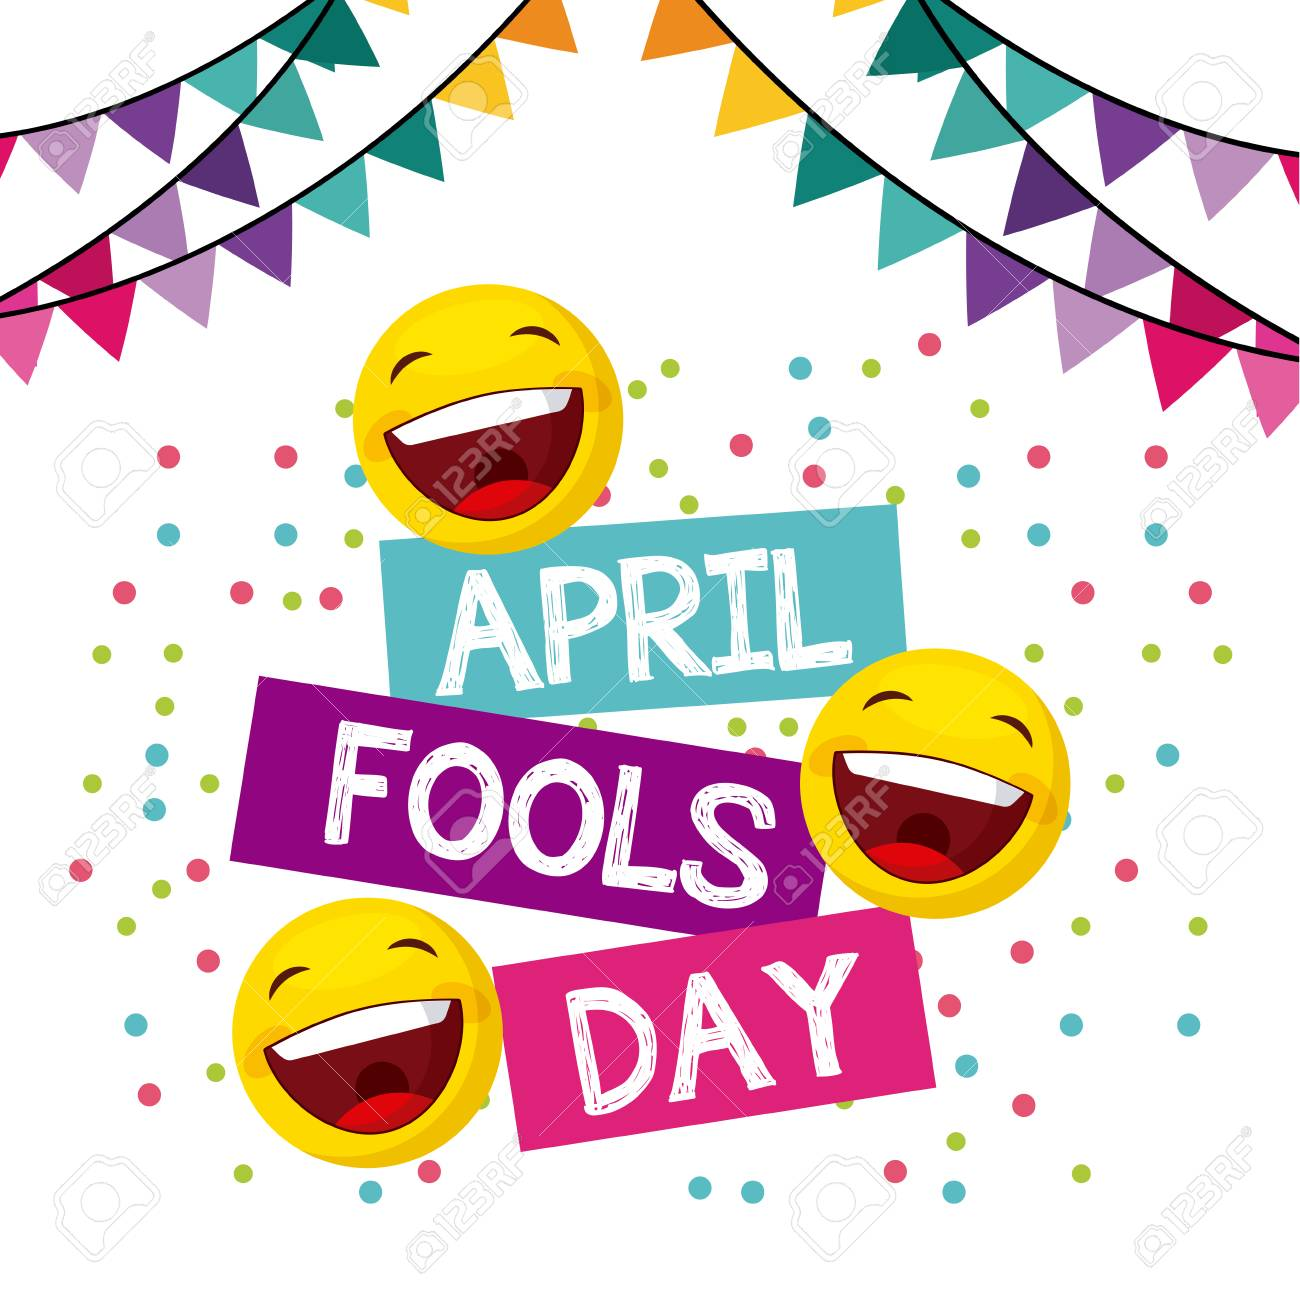 April Fools Day Card With Happy Faces Over White Background... Royalty Free Cliparts, Vectors, And Stock Illustration. Image 73969646.